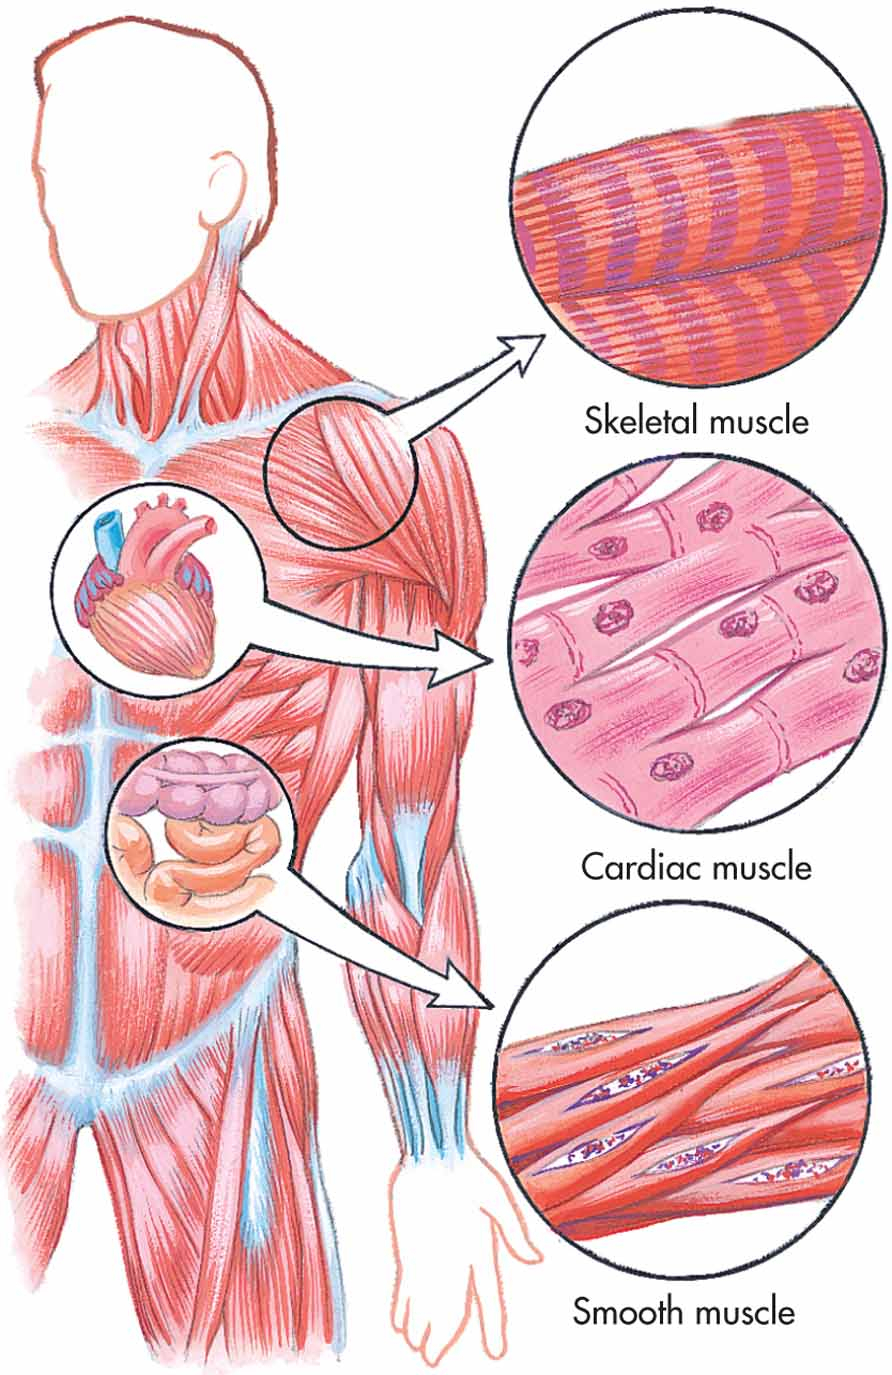 cardiac muscle tissue diagram labeled peugeot partner wiring drawing at getdrawings com free for personal use 892x1375 types of easy to draw diagrams skeletal